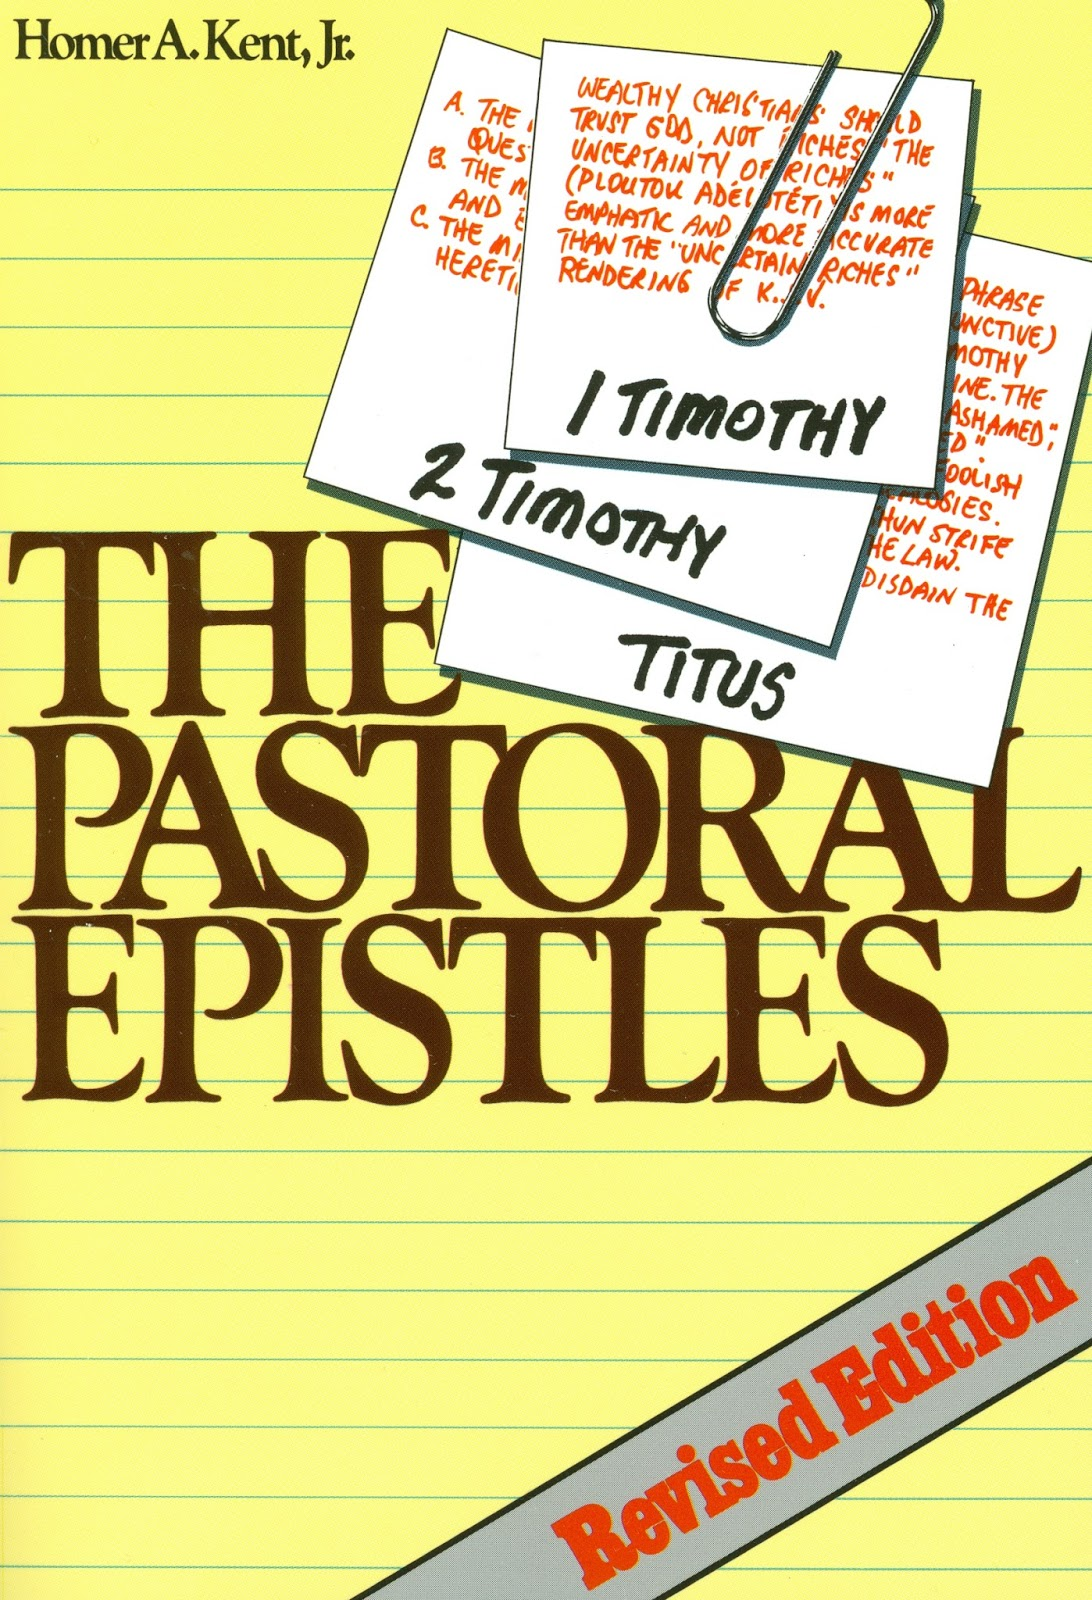 The Pastoral Epistles (1 and 2 Timothy, and Titus)